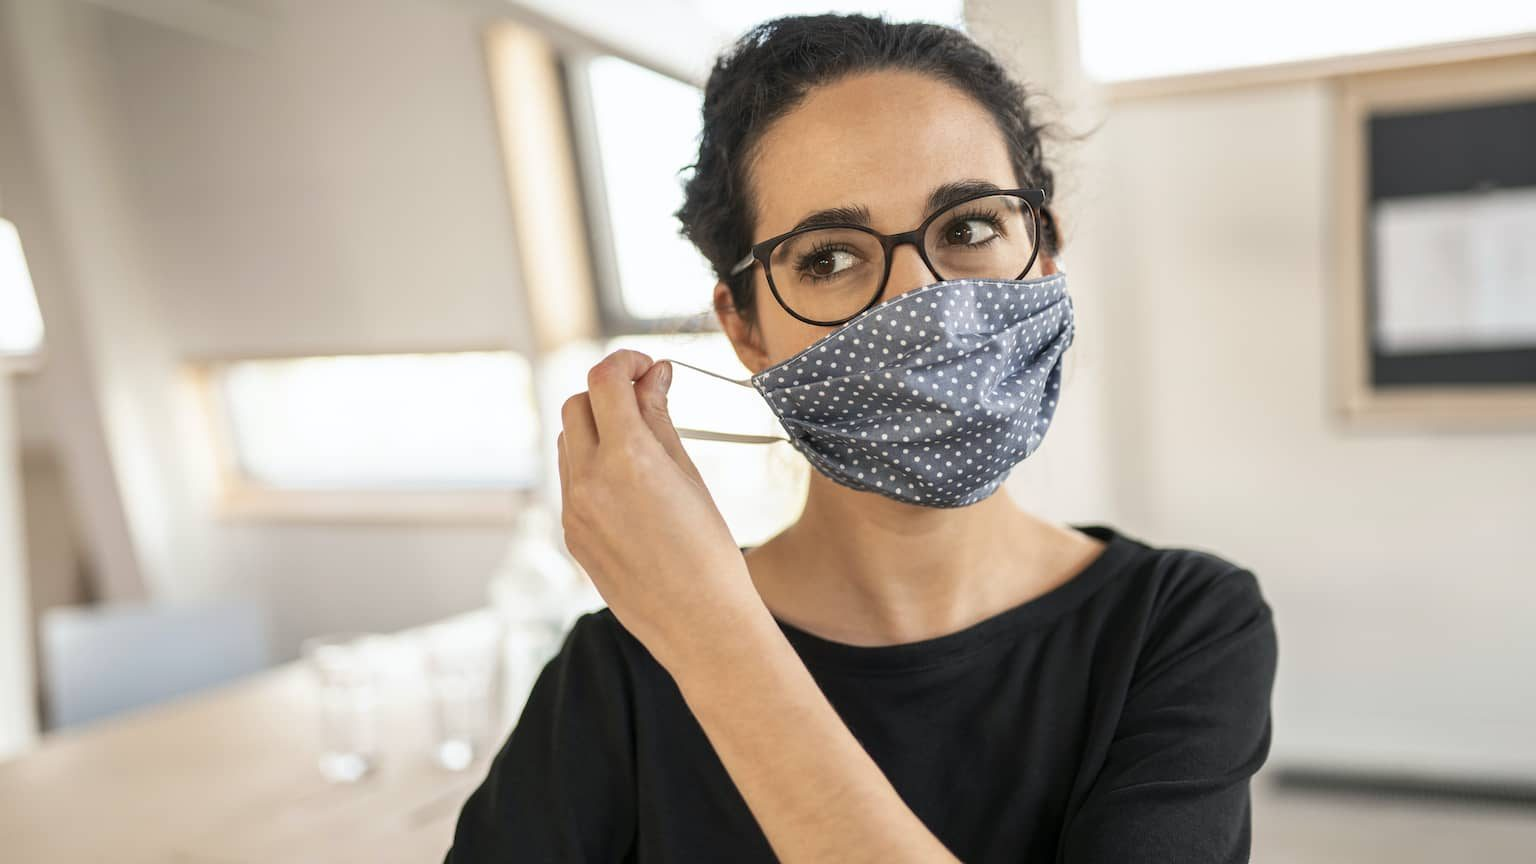 Woman with short hair and glasses wearing a cloth face mask